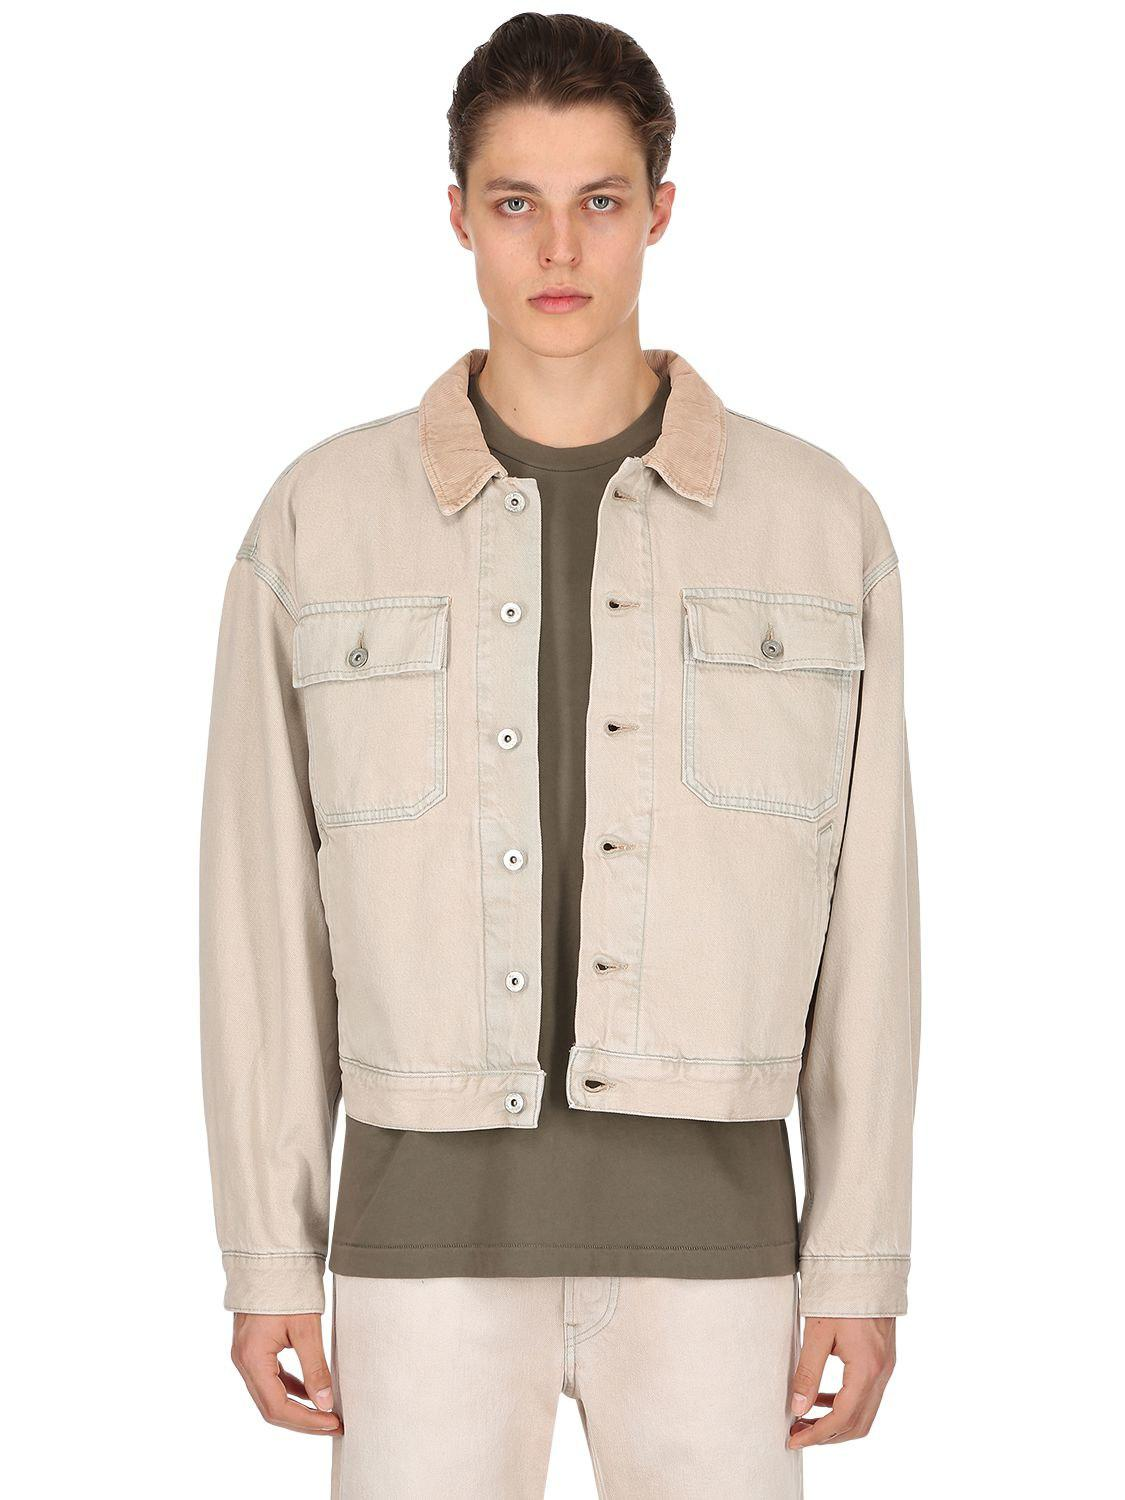 4d9c5079a02f Yeezy - Multicolor Oversize Stone Washed Denim Jacket for Men - Lyst. View  fullscreen